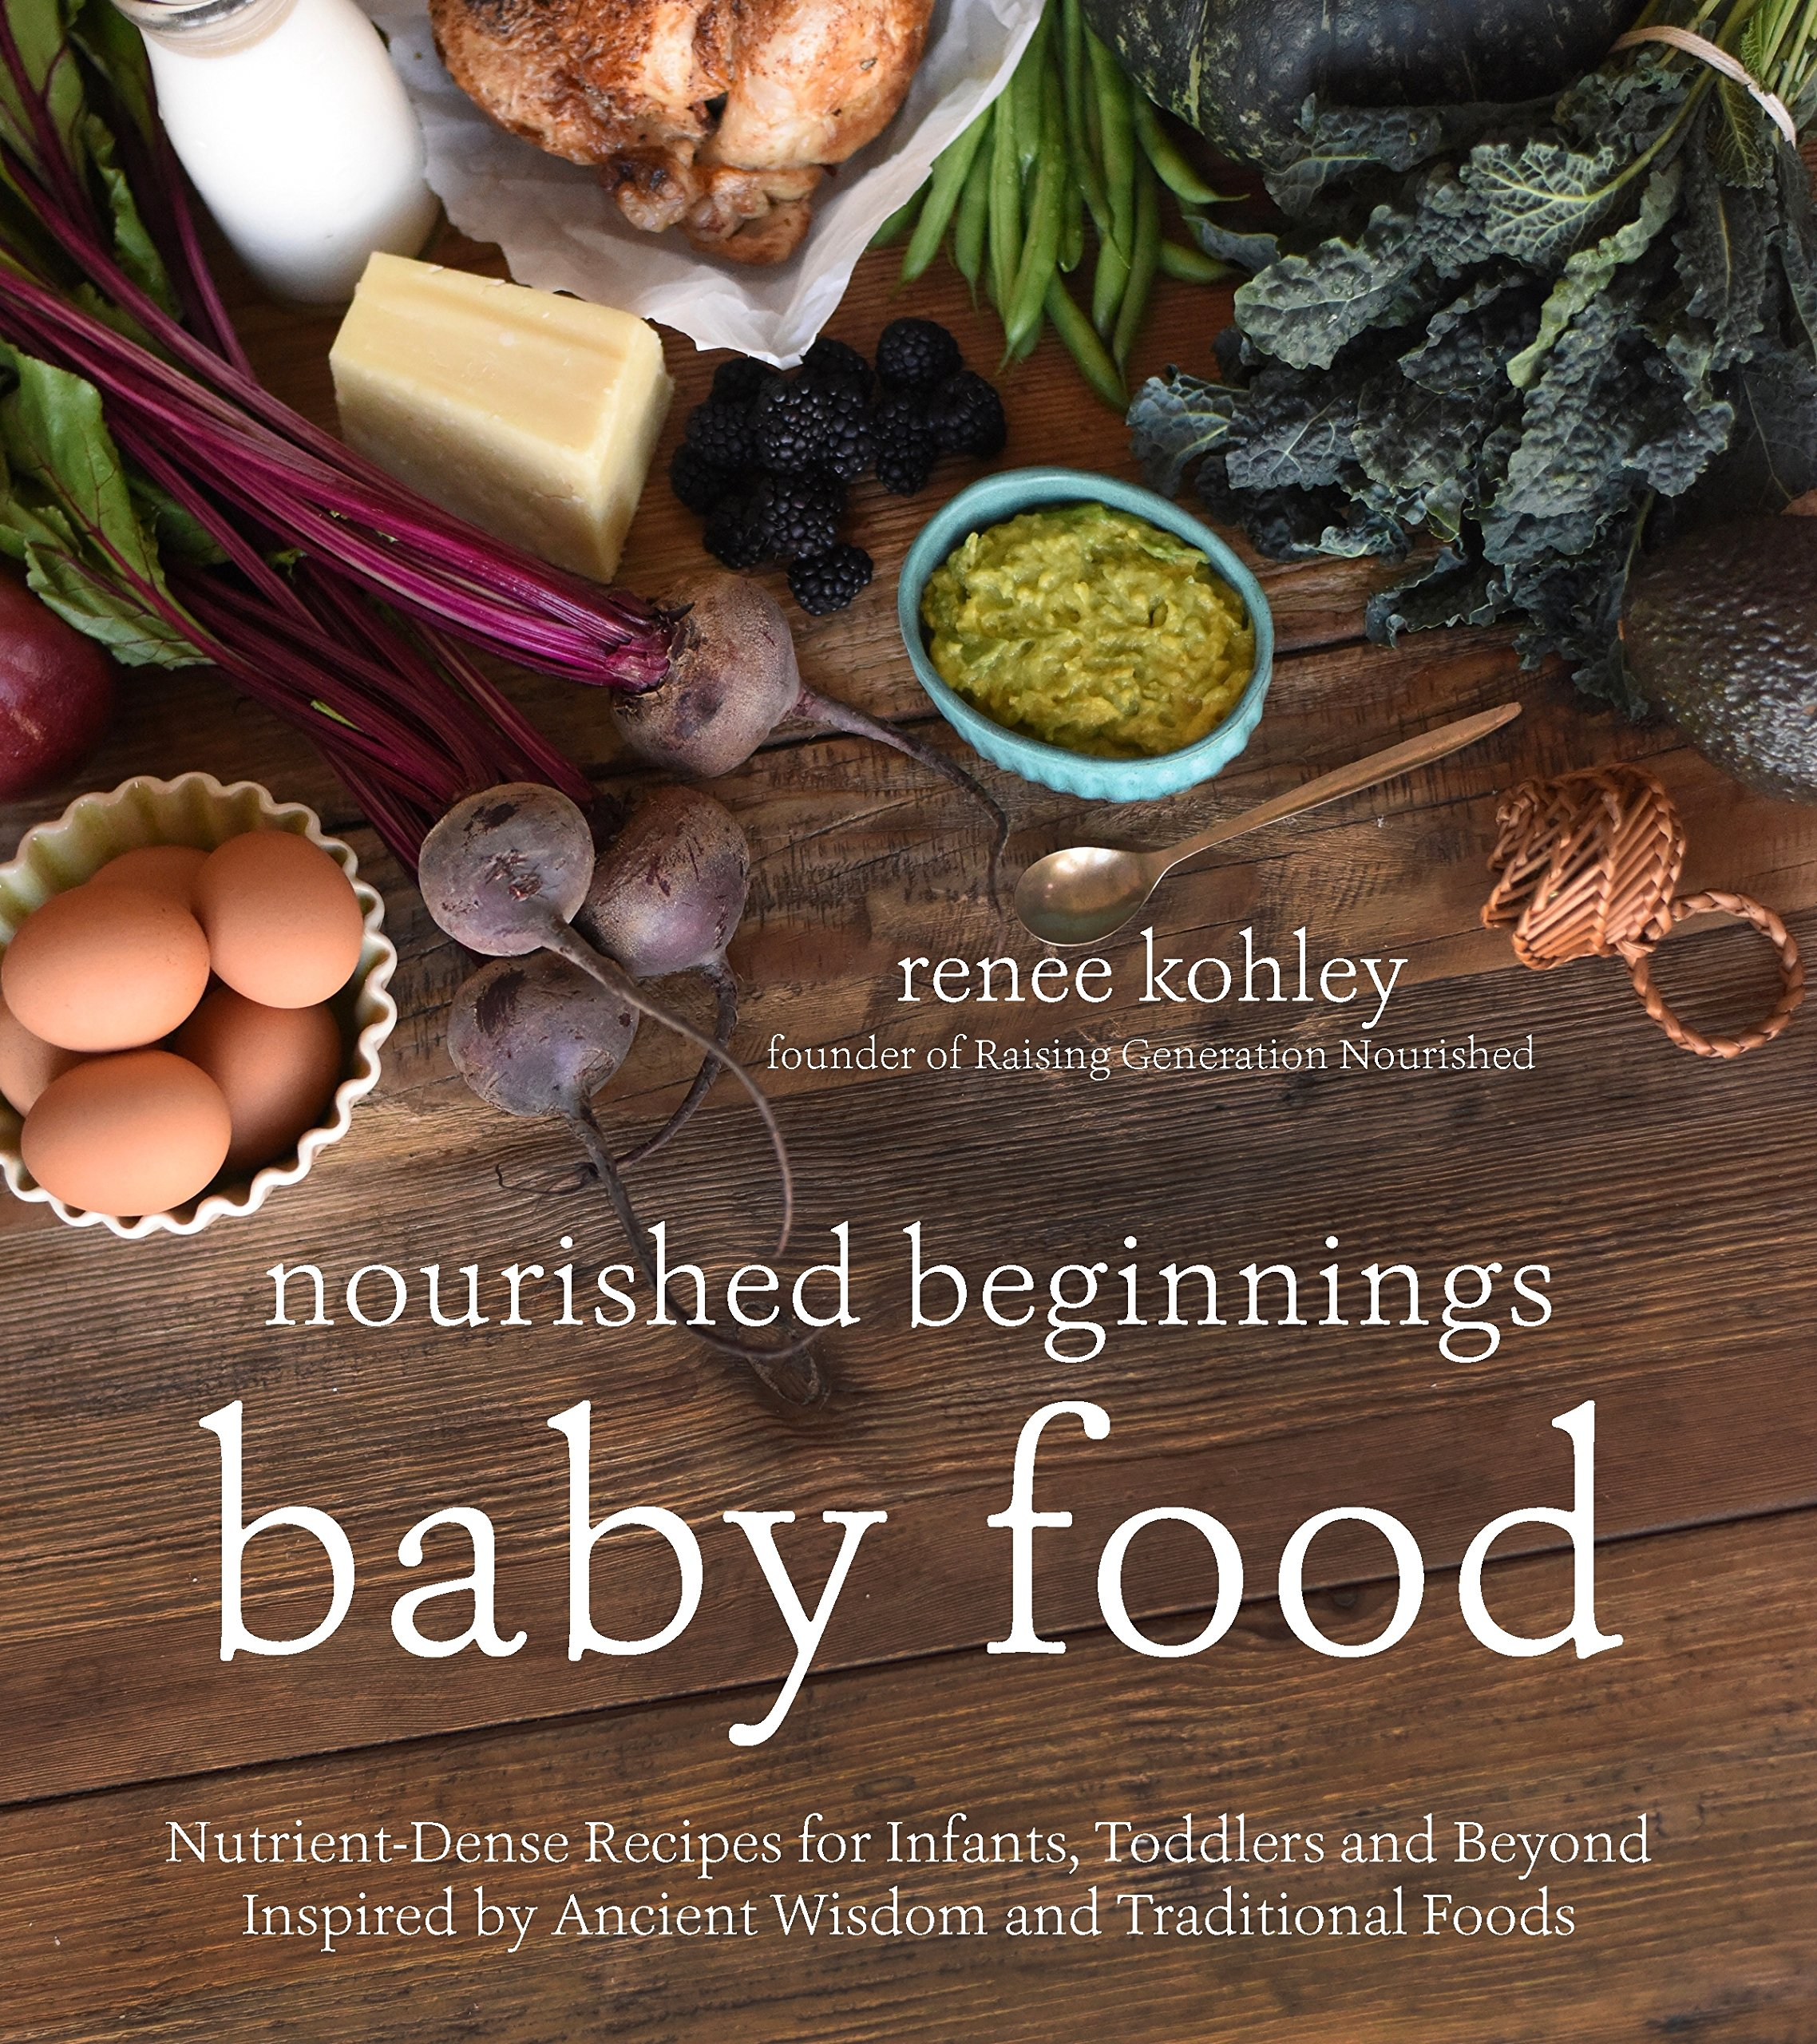 Nourished Beginnings Baby Food: Nutrient-Dense Recipes for Infants, Toddlers and Beyond Inspired by Ancient Wisdom and Traditional Foods - by Renee KohleyNurturing Nutrition for Your Beautiful BabyStart your baby on a nutrient-dense journey by preparing his or her first foods from scratch with healthy whole-food ingredients. Steal their taste palates away from processed ingredients by getting back to the basics. Your care in the first years will result in a child who knows where their food comes from and who won't shy away from fresh vegetables or wholesome ingredients. Plus, the recipes come together in a pinch and will save you time and money along the way.Renee Kohley's healthy foods nurture not just baby, but are delicious for the rest of the family, too. With recipes such as Bone Broth for baby transformed into Fresh Spring Vegetable Soup for the rest of the family, Renee provides simple tips to feed more hungry mouths faster, easier, cheaper and more nutritiously. With everything from single-ingredient purees for newborns to fuller meals that incorporate grains, nuts and legumes for toddlers, you have all your bases covered.With Nourished Beginnings Baby Food you will help your child develop healthy eating habits for life.